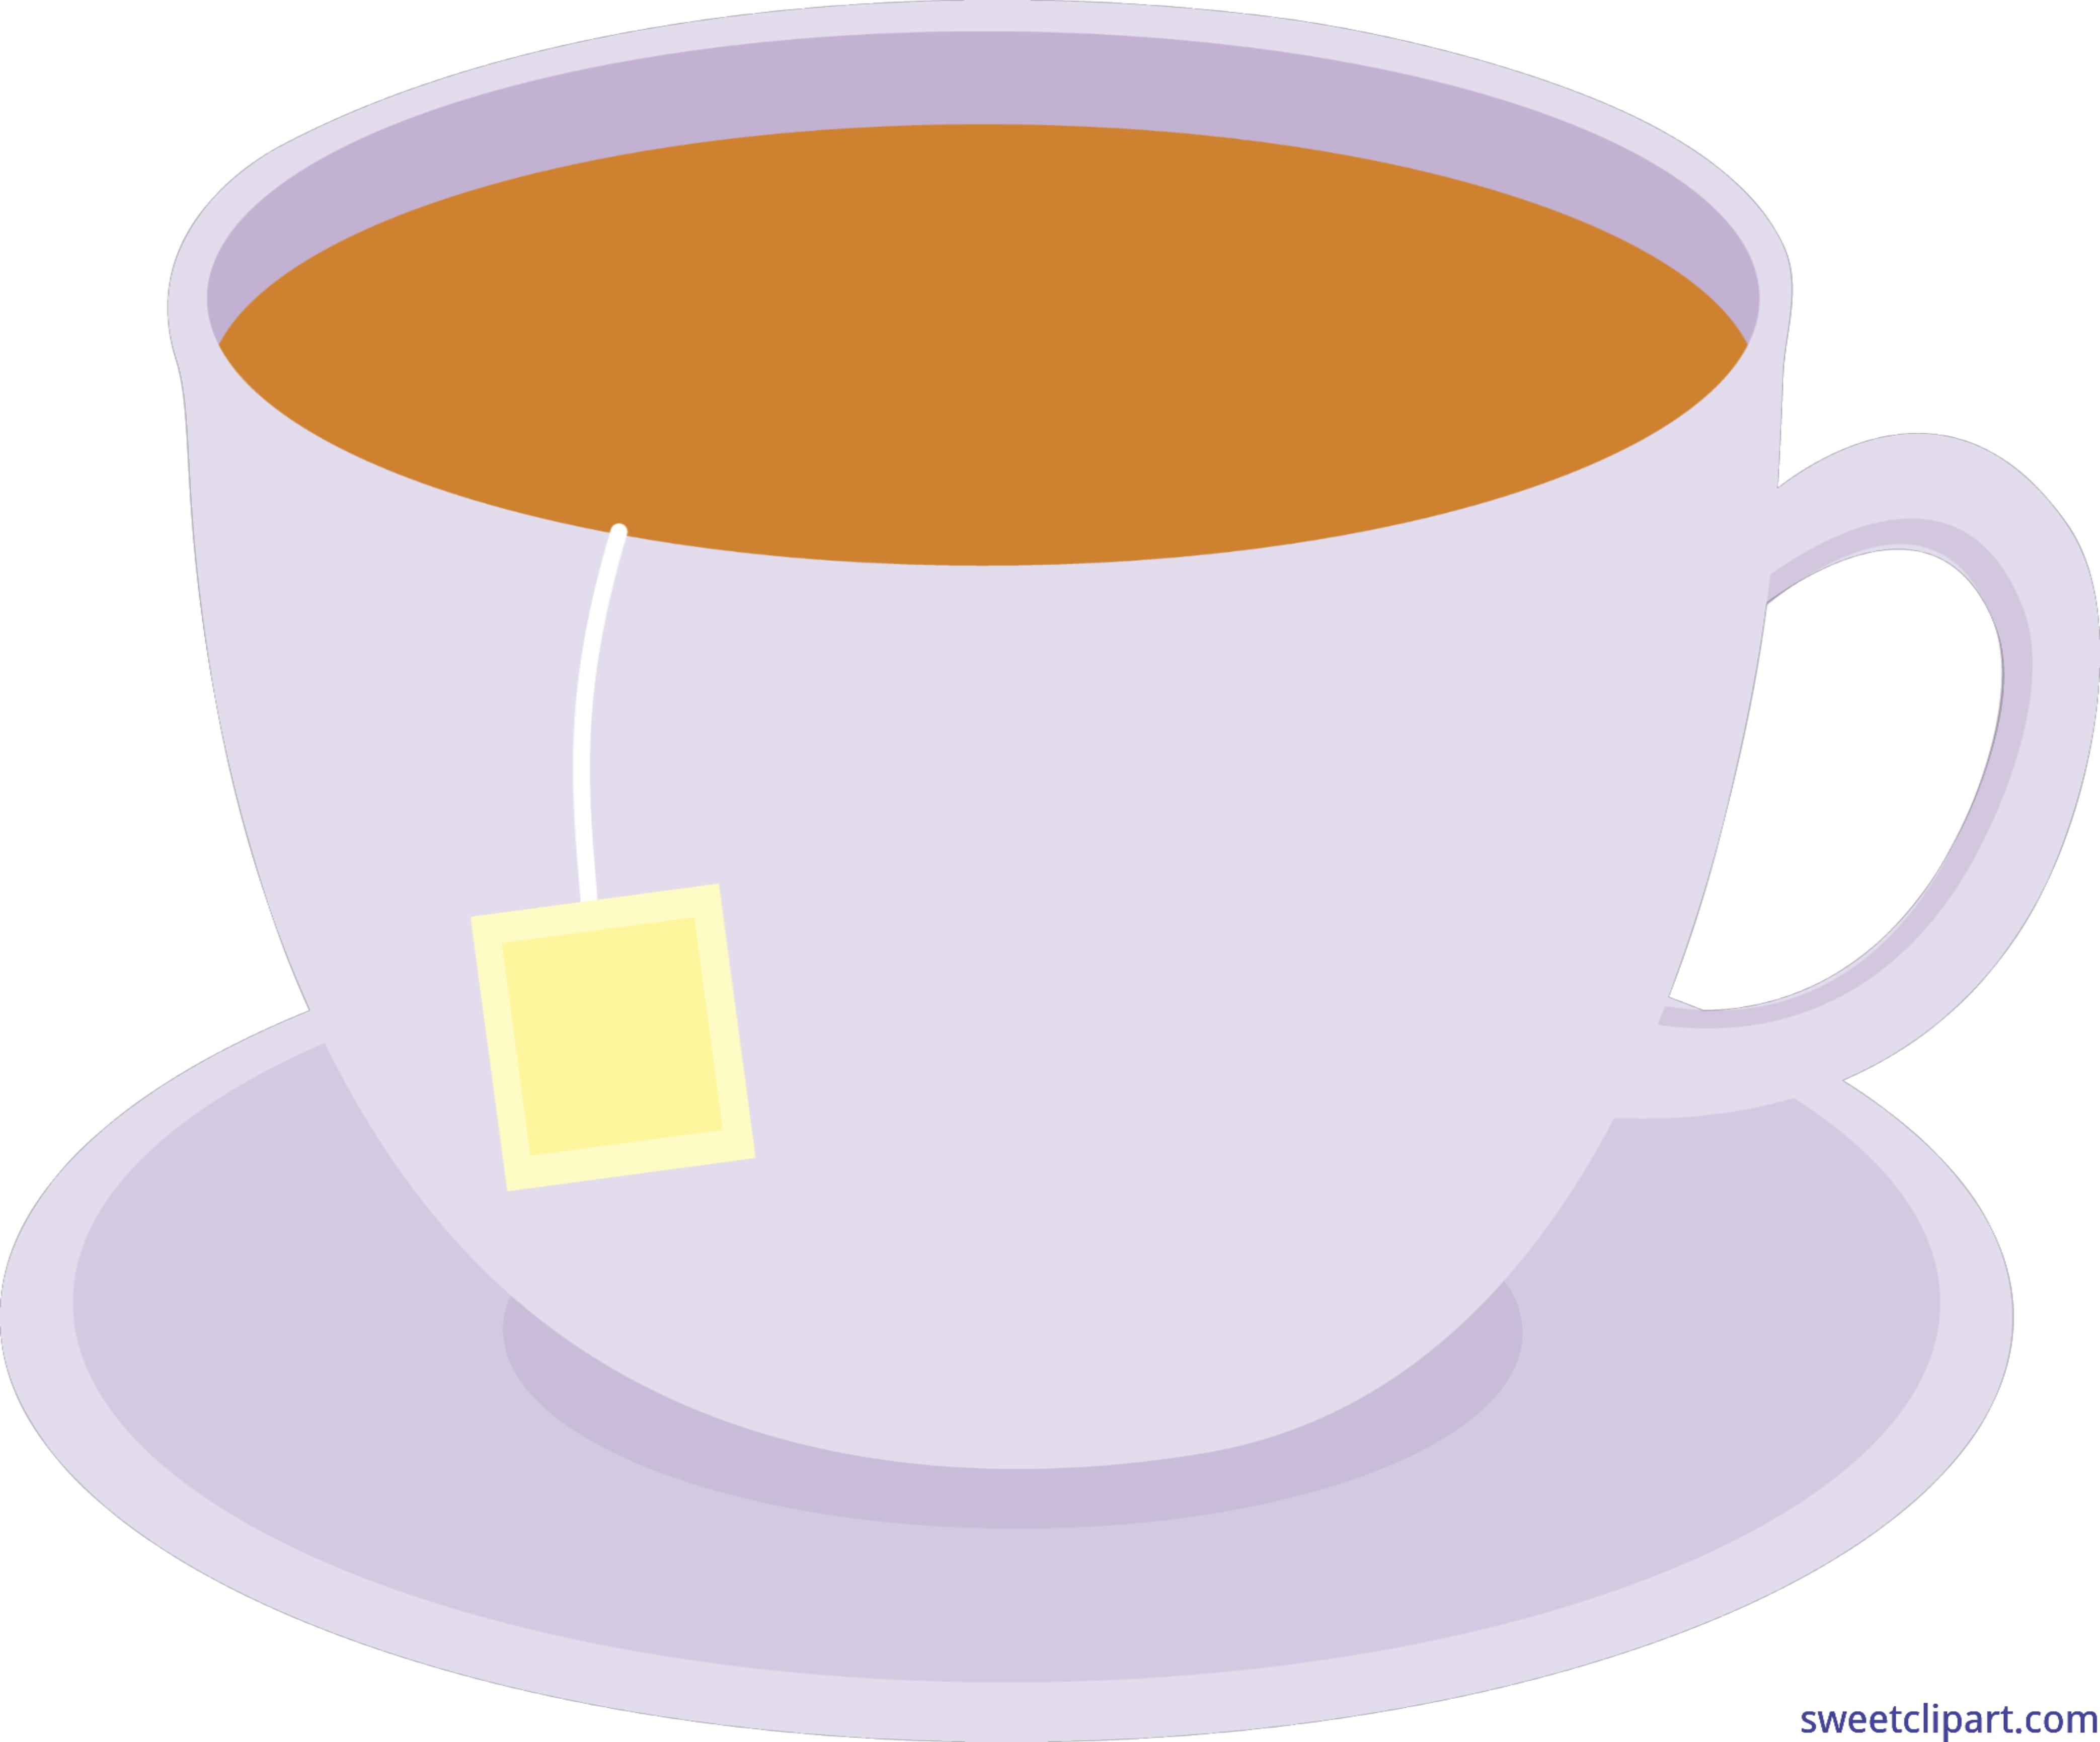 4173x3462 Cup Of Tea On Dish 1 Clip Art